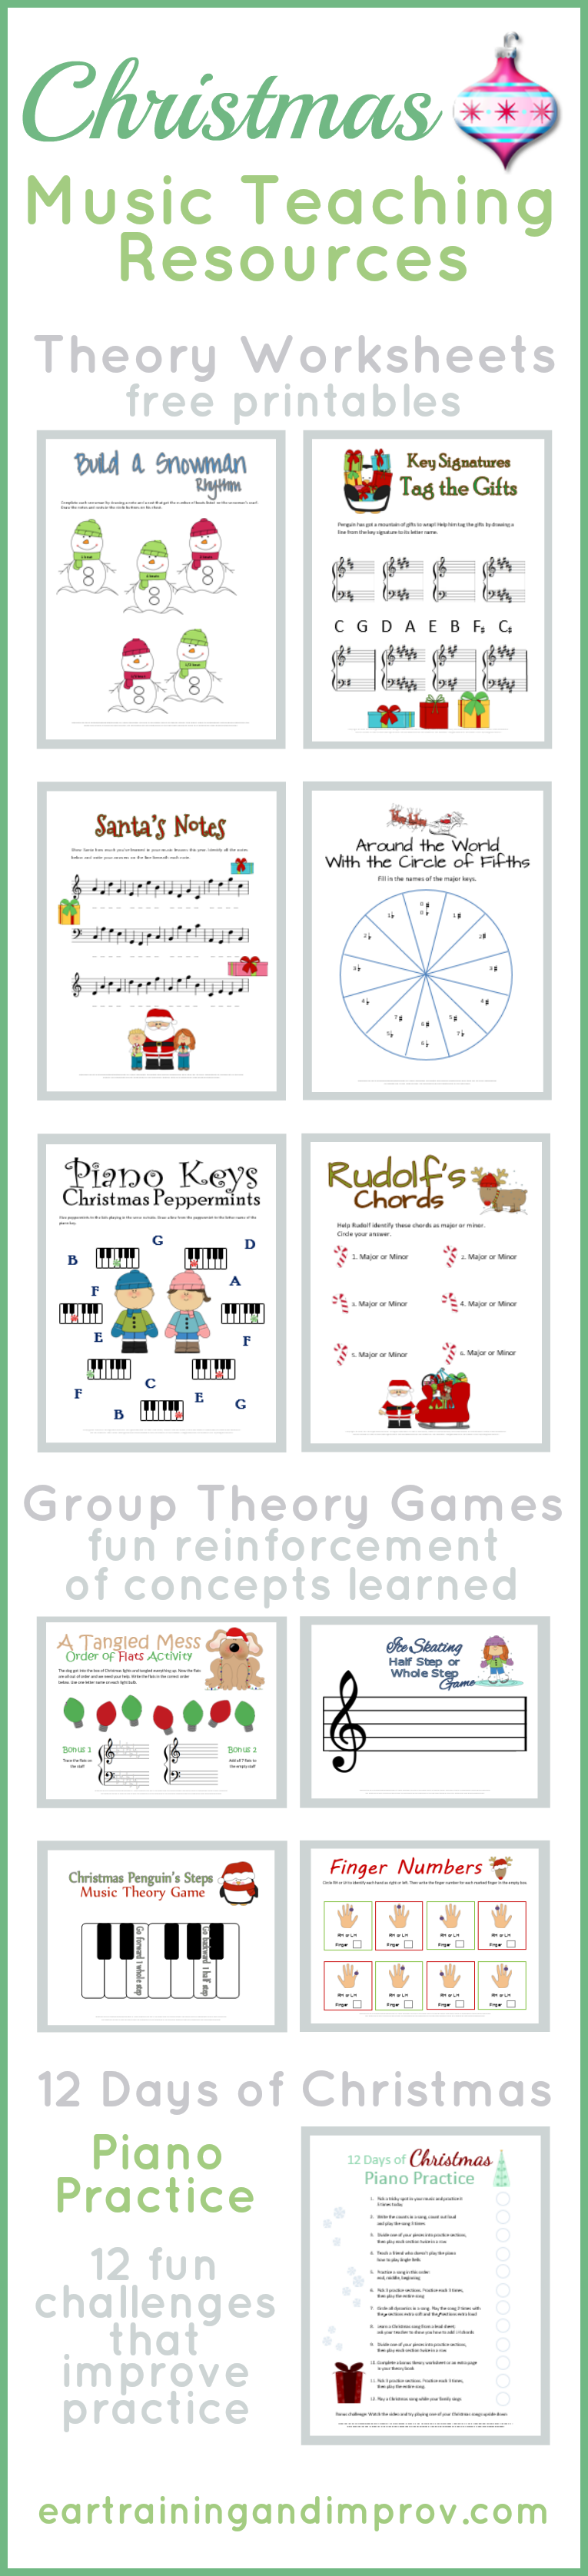 Worksheets Theory Worksheets christmas music theory worksheets 20 free printables teaching resources group games 12